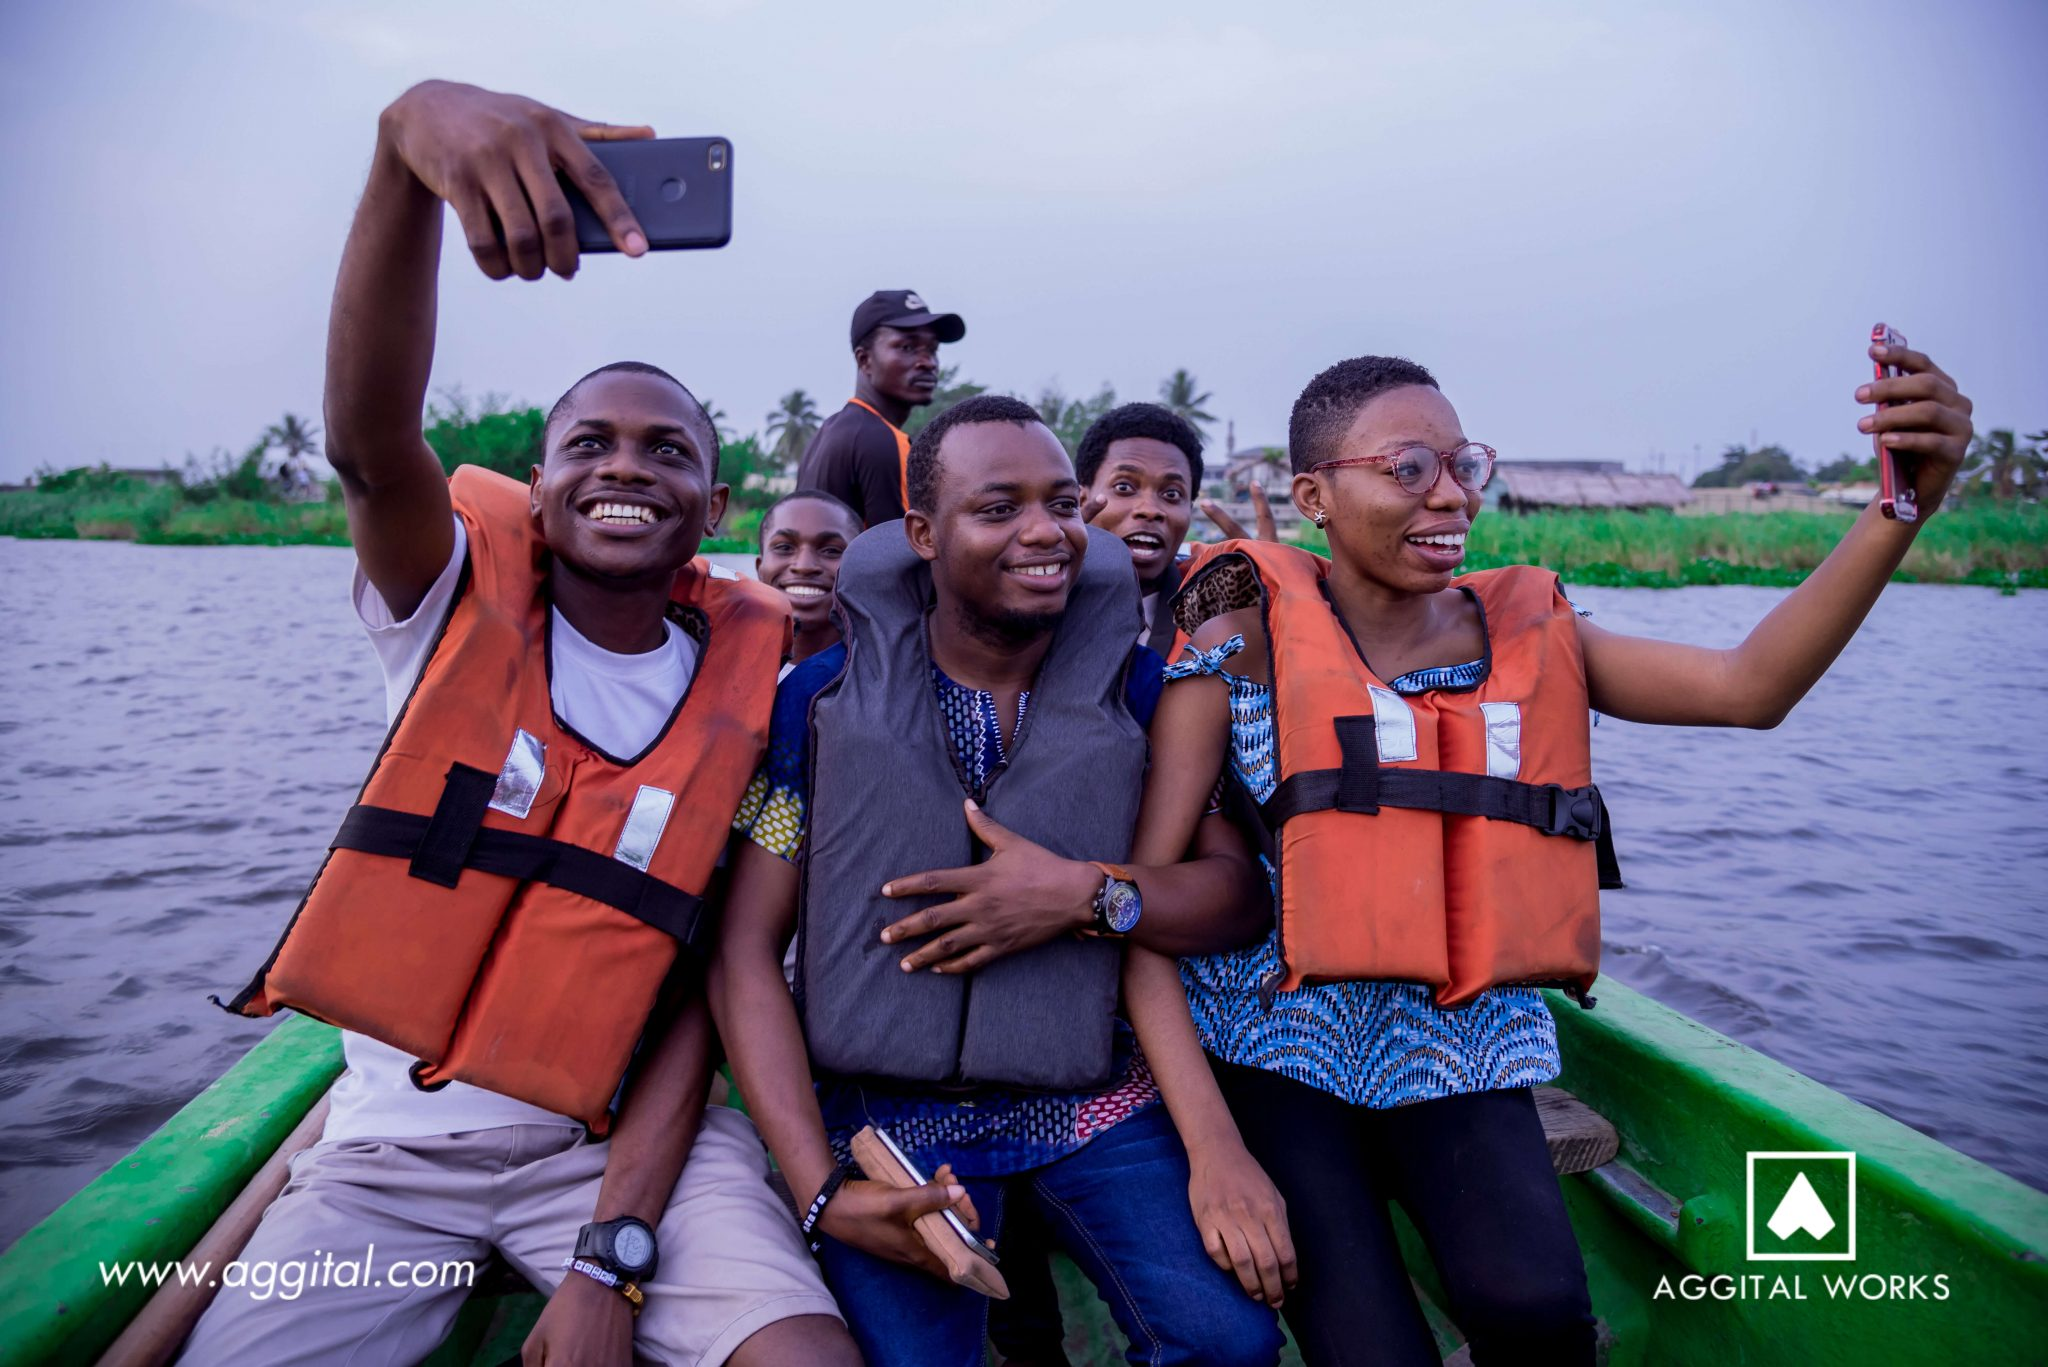 Aggital Travel Diary - Our Very First Road Trip To Badagry.